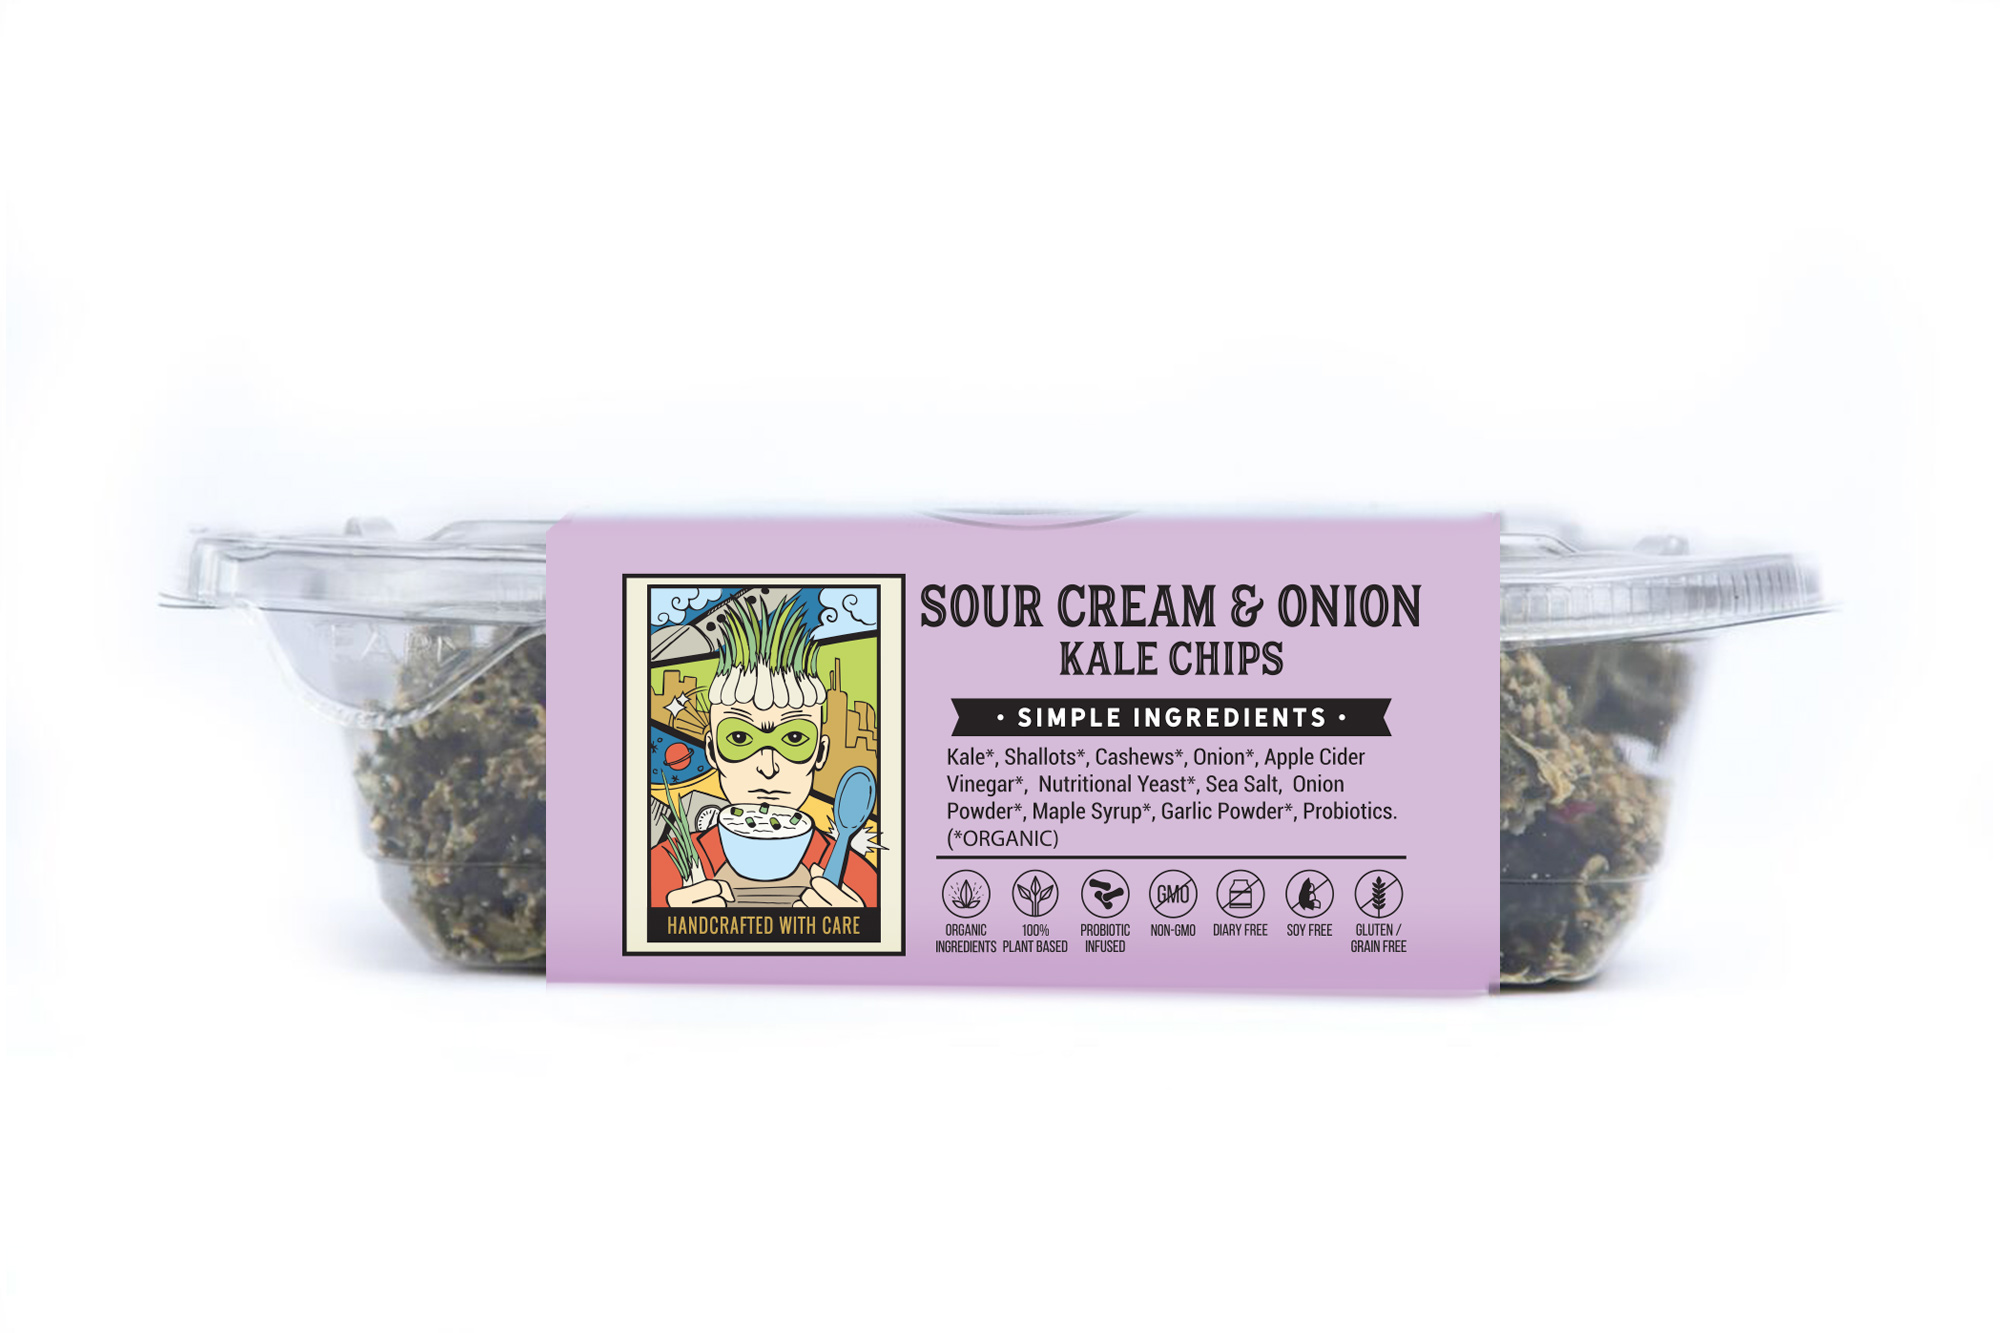 sour cream and onion kale chips side 1